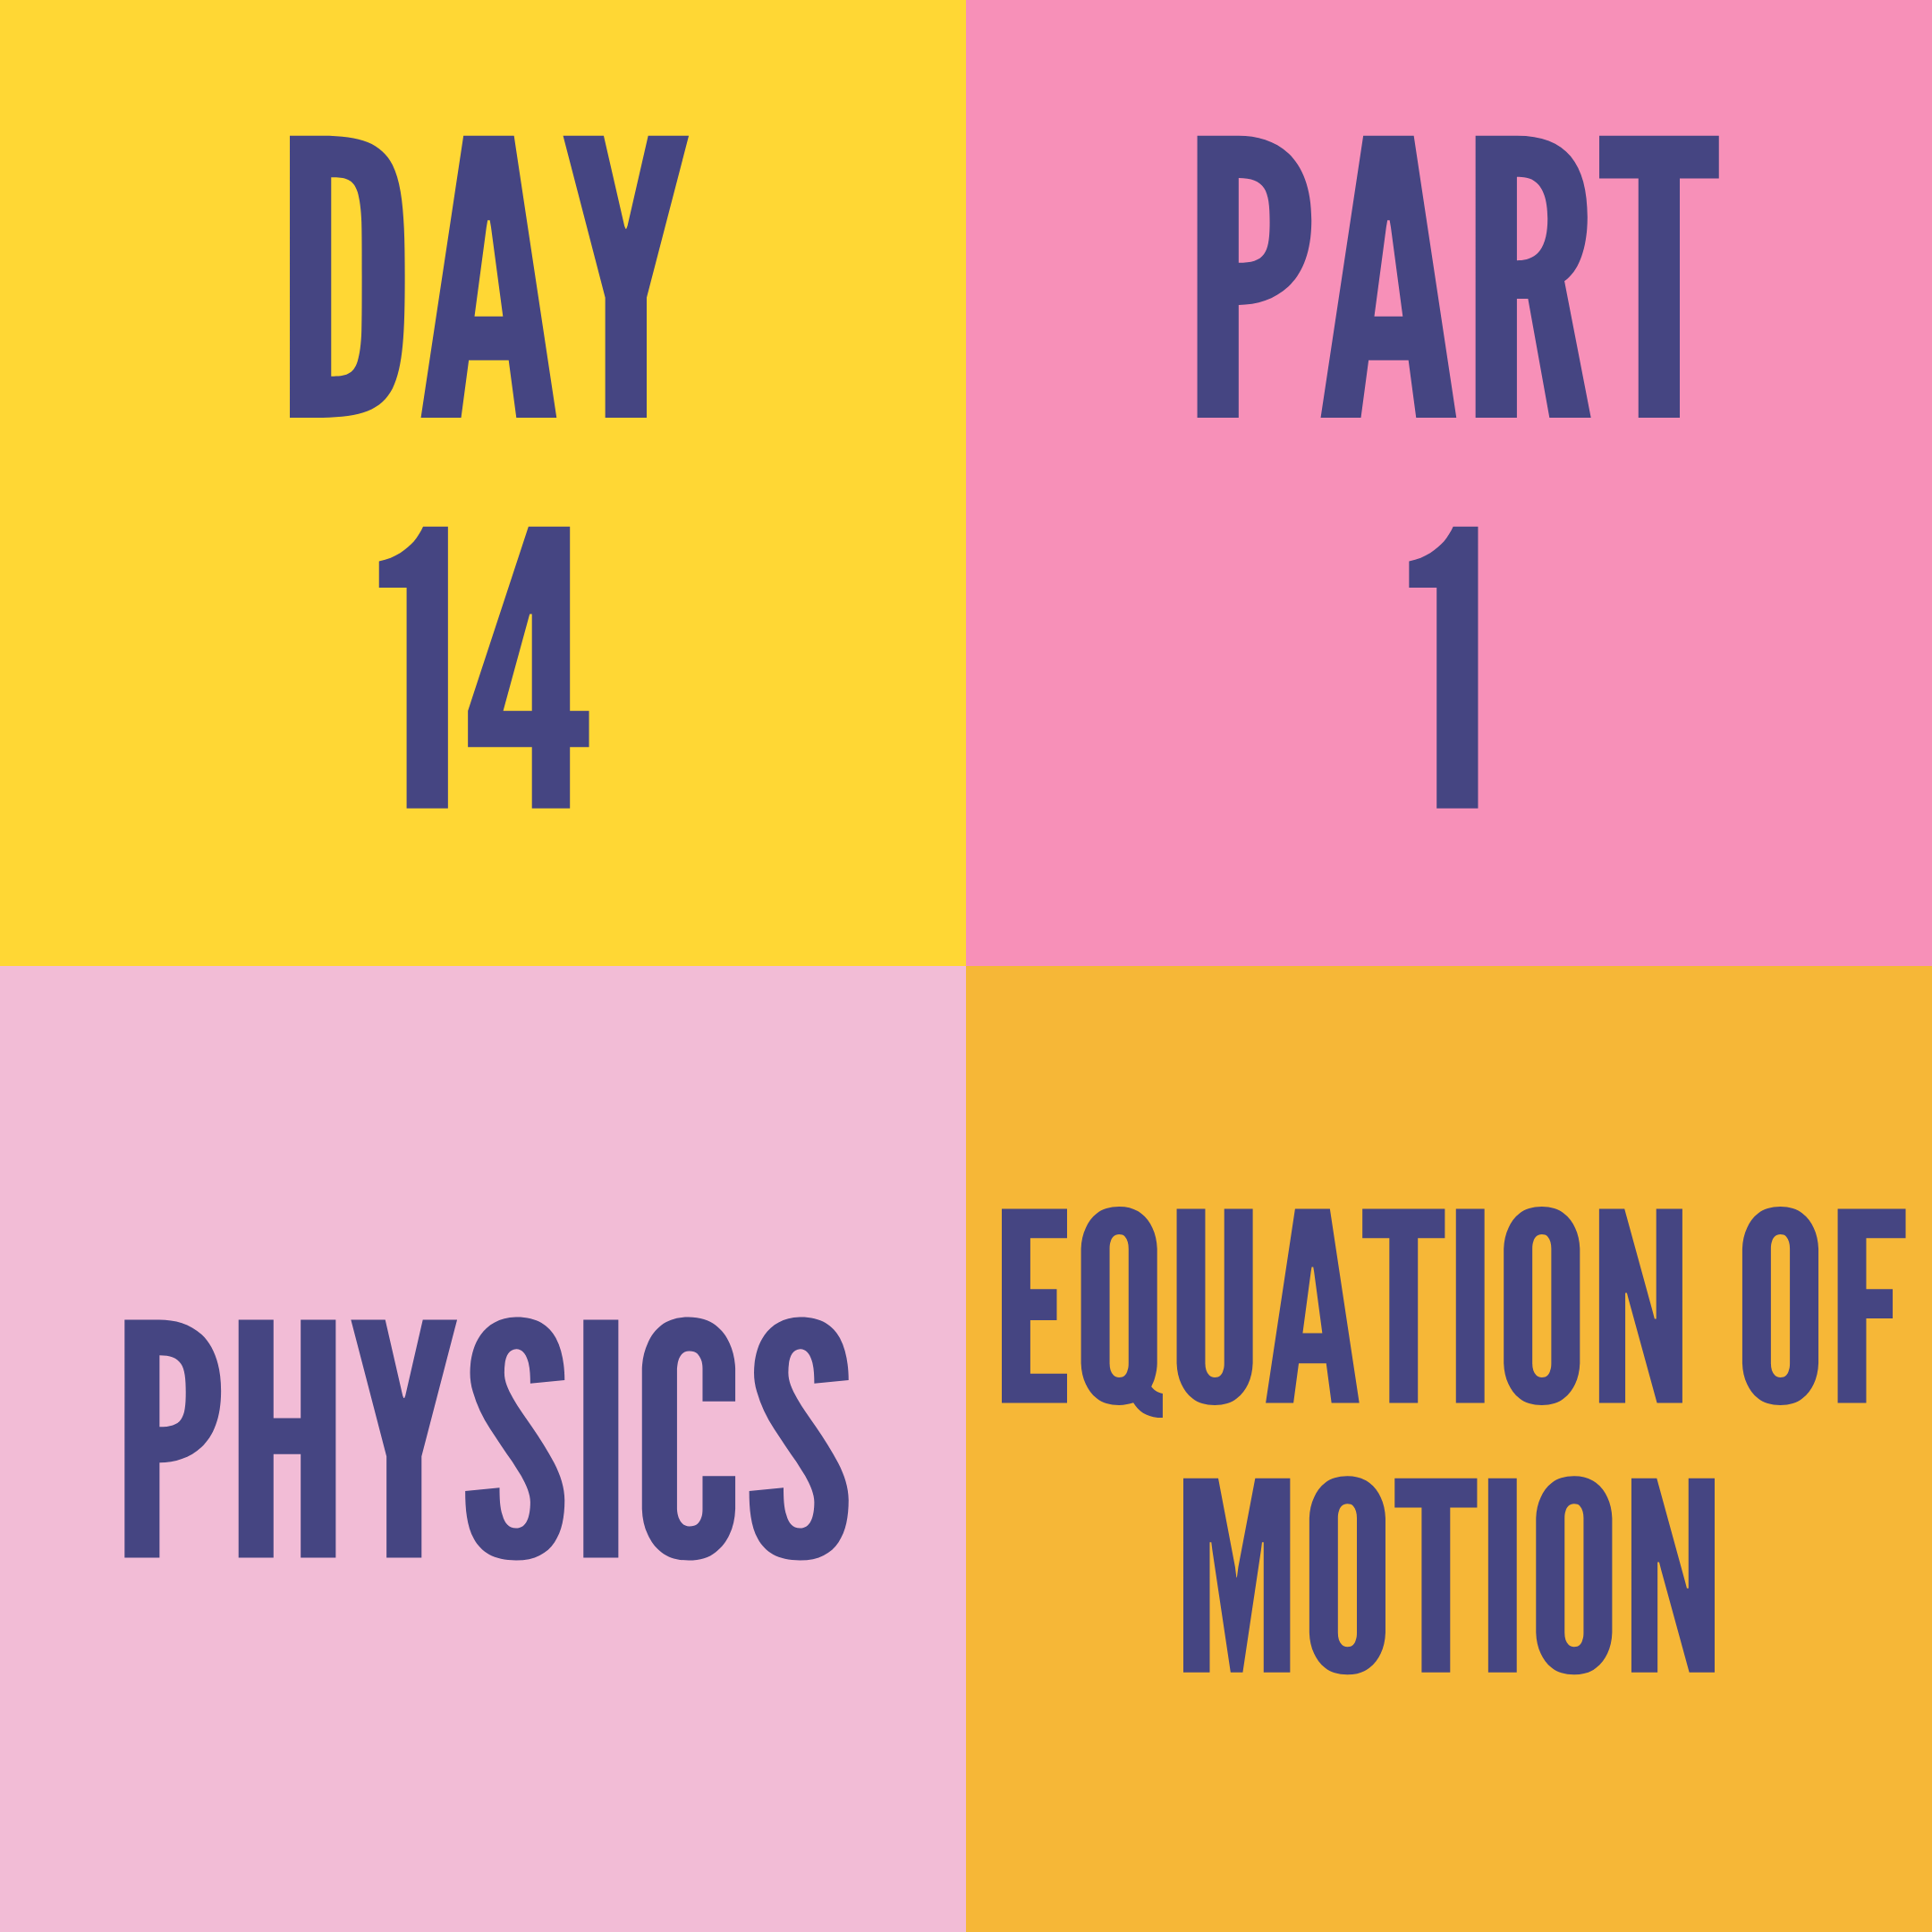 DAY-14 PART-1 EQUATION OF MOTION